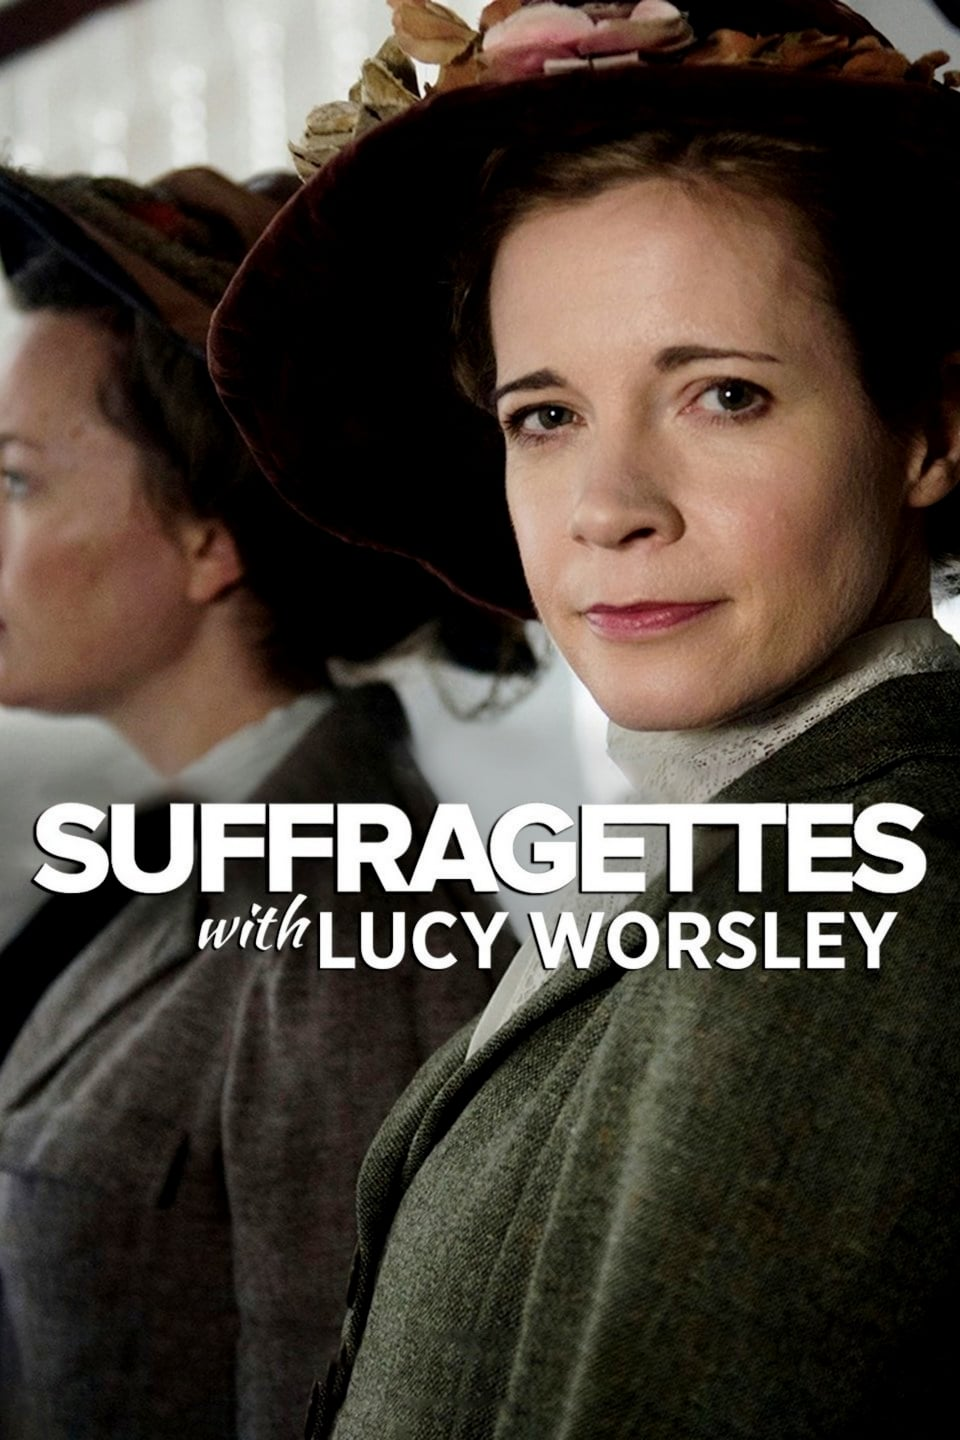 Suffragettes, with Lucy Worsley (2018)